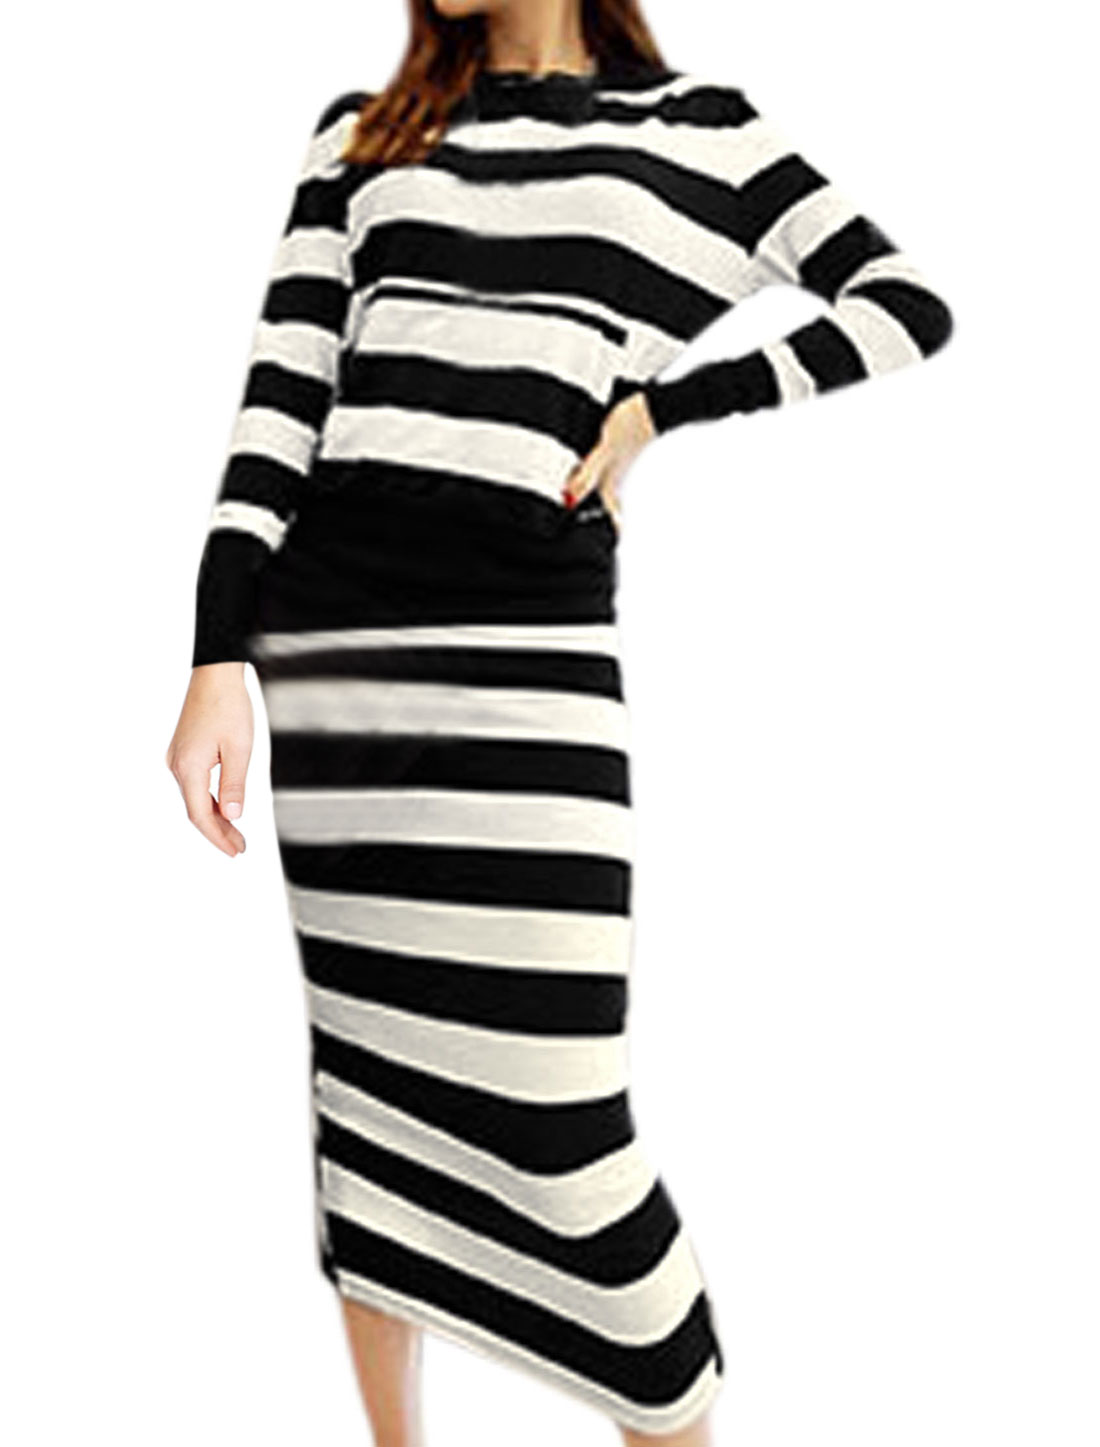 Ladies Black White Long Sleeves Round Neck Stripes Hoodie w Elastic Waist Skirt S